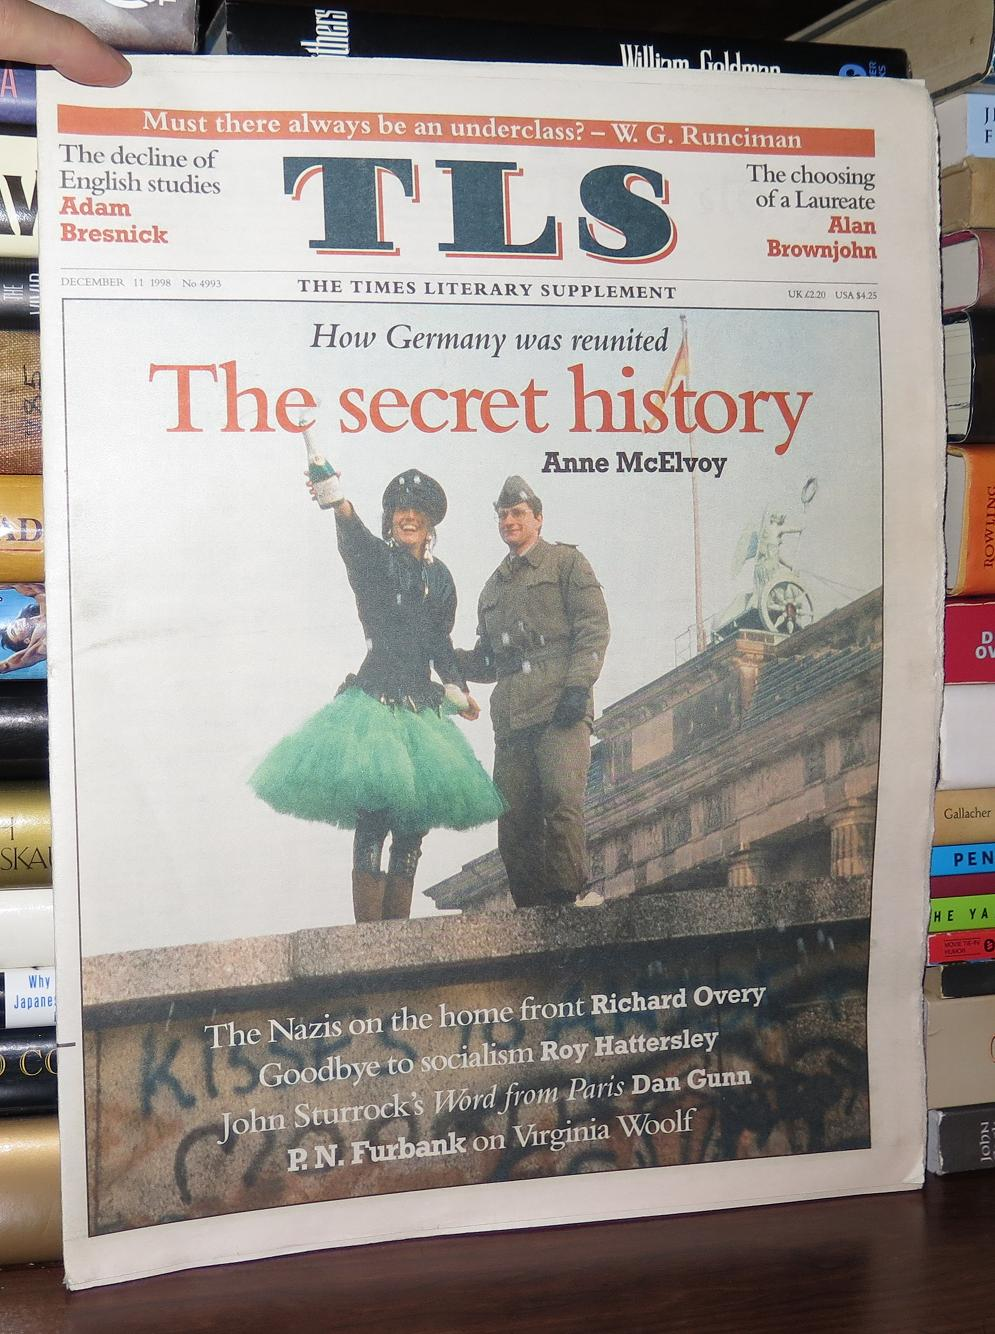 Adam Bresnick Tls The Times Literary Supplement December 11 1998 By Adam Bresnick On Rare Book Cellar